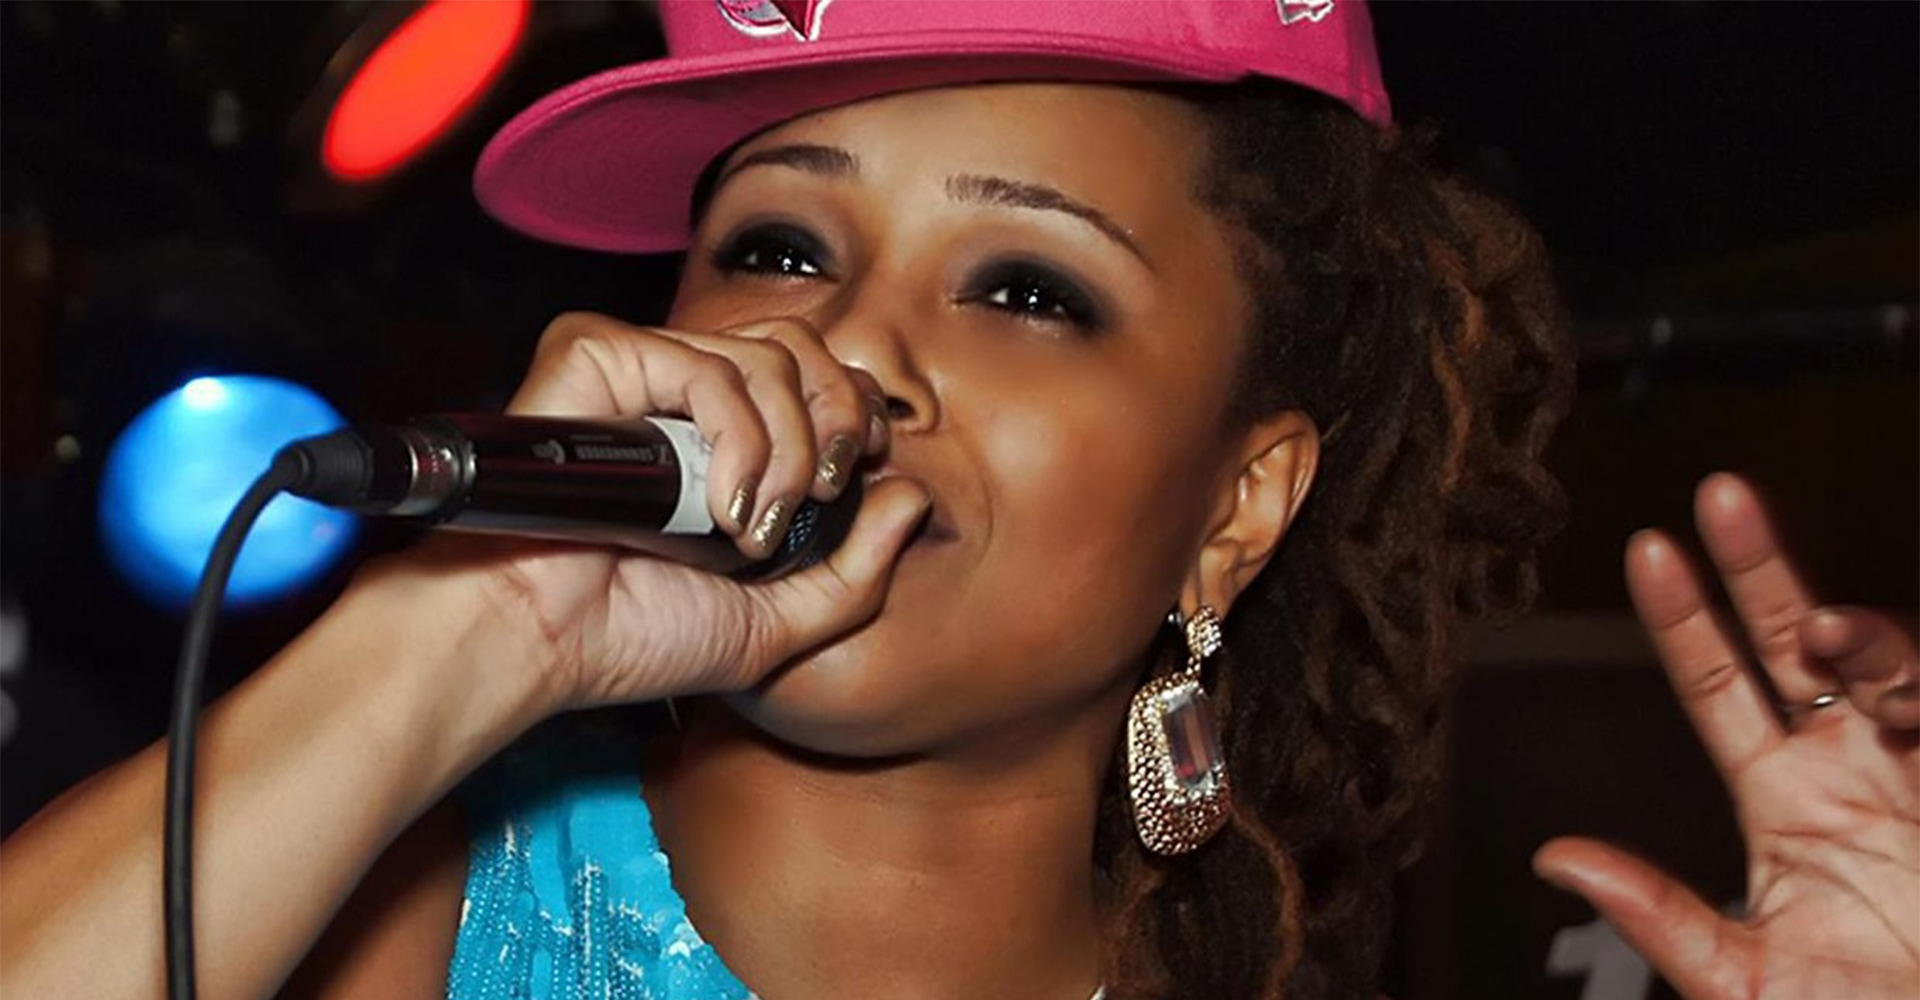 A woman wearing a Blue Jays baseball hat raps into a microphone